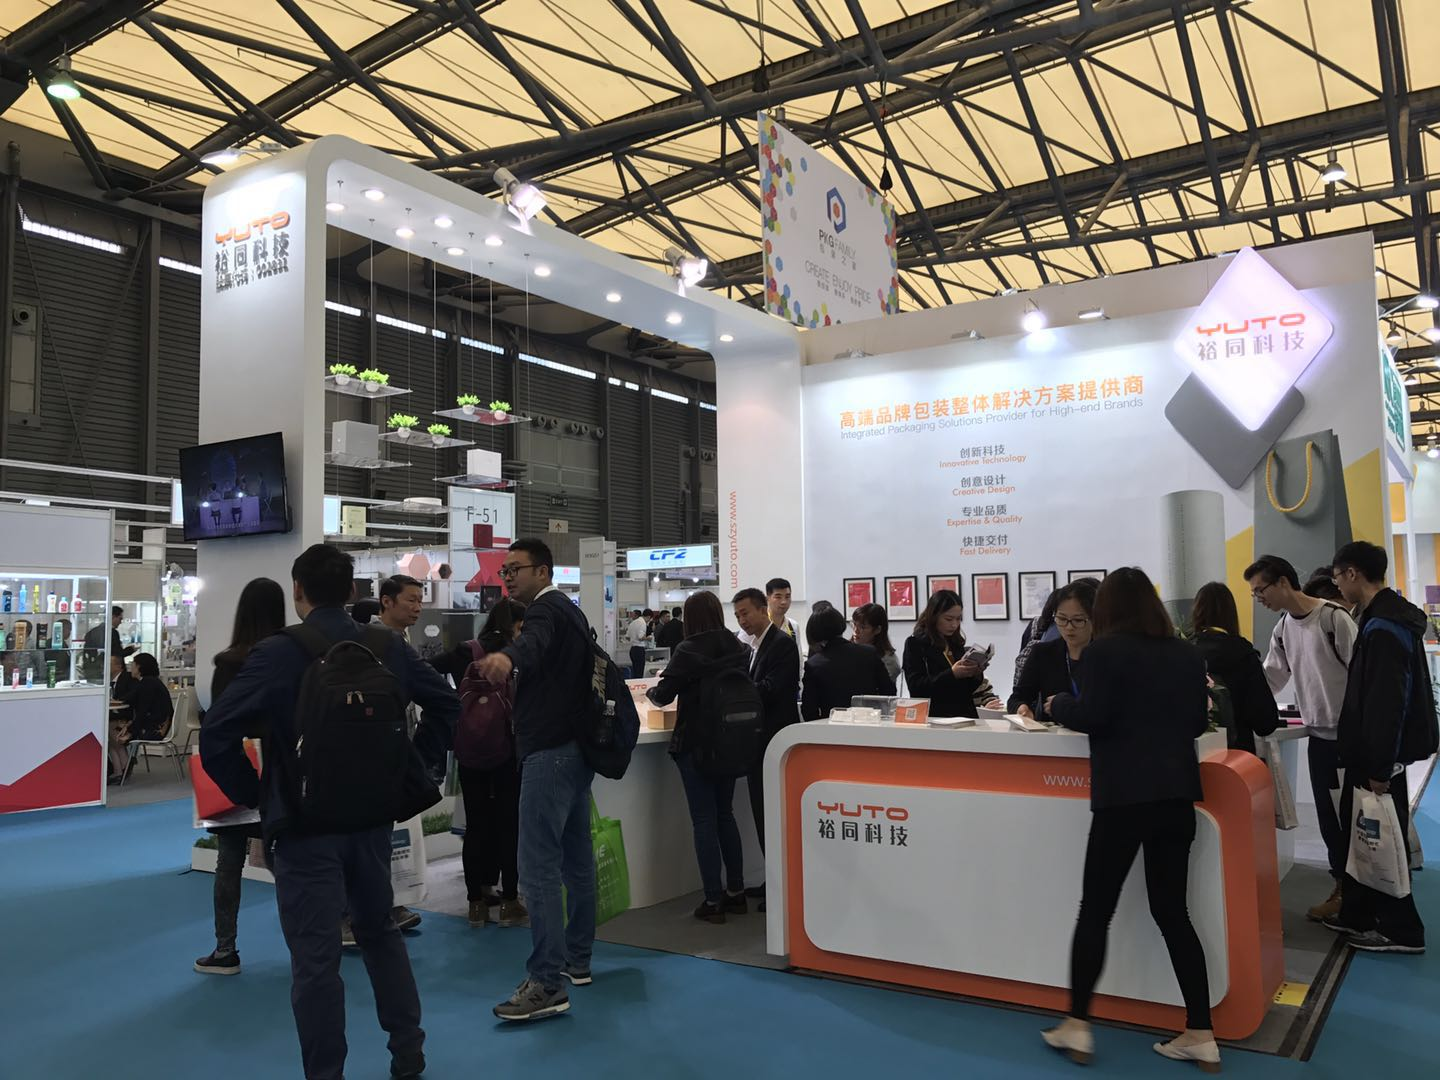 SWOP 2017 Opening, YUTO Tech Booth has a grand occasion